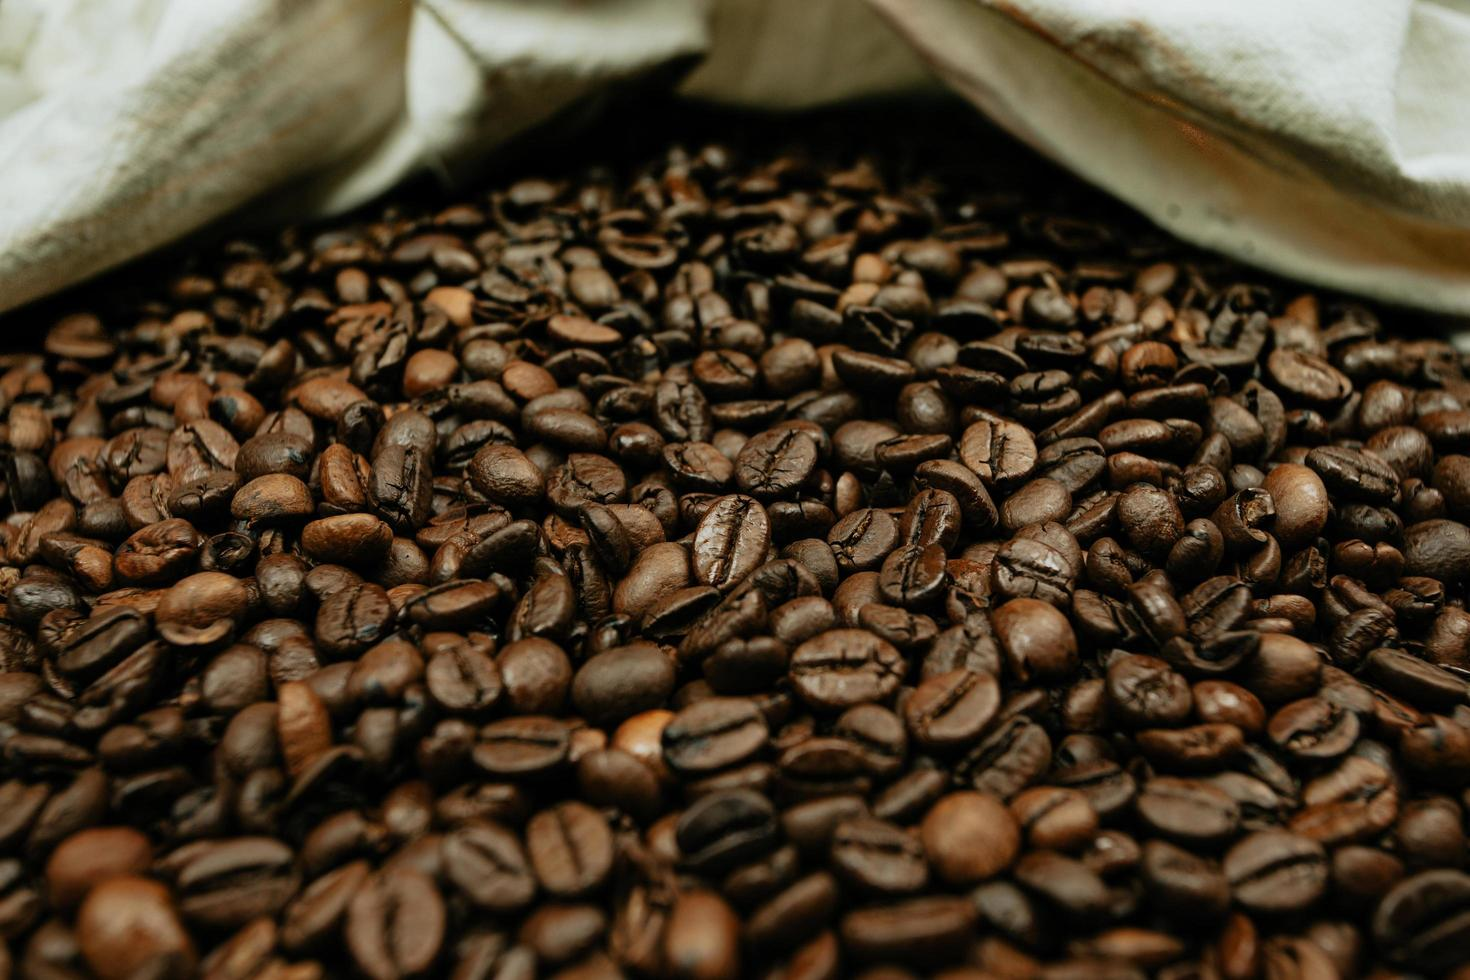 A lot of coffee beans photo